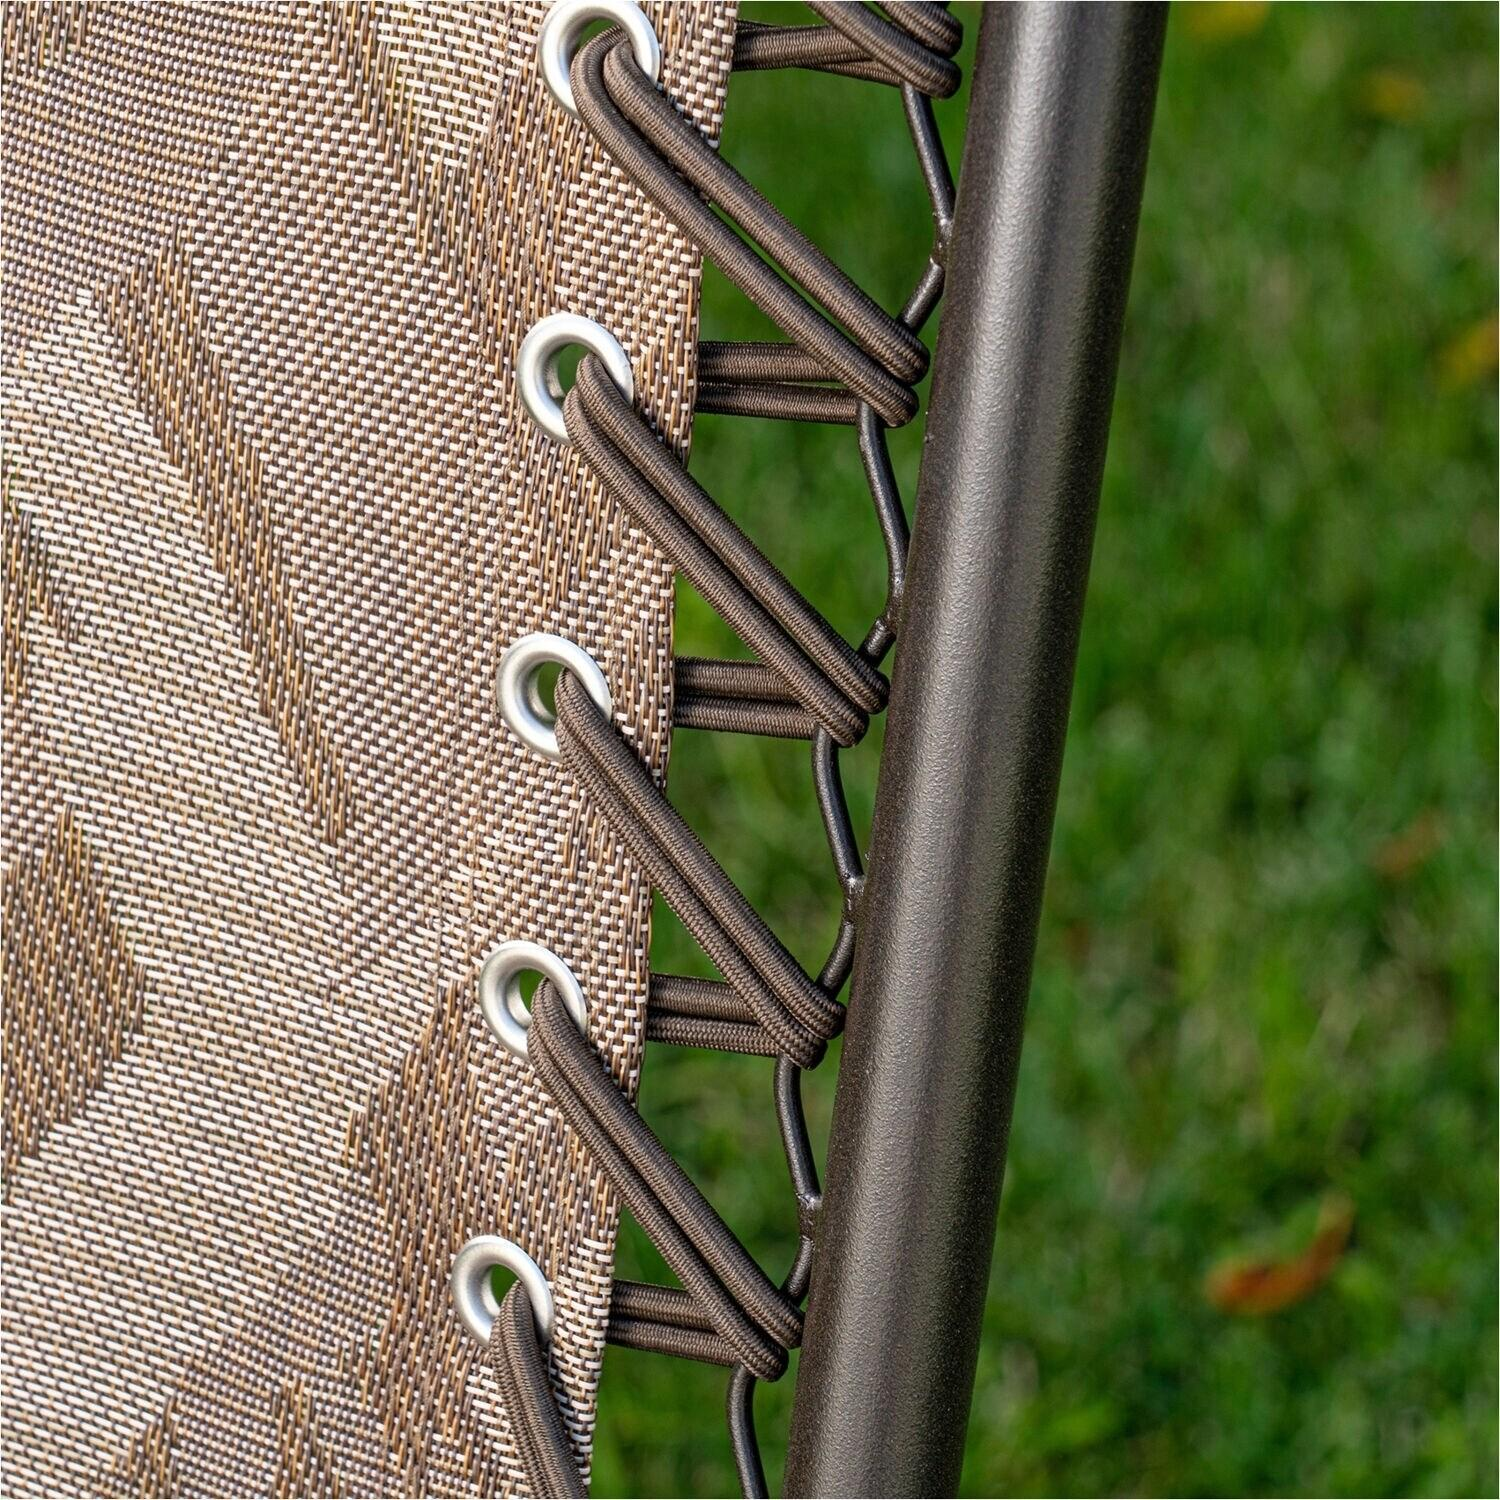 Hanover Elkhorn 3-Piece Portable Camo Seating Set featuring 2 Folding Lawn Chairs and Folding Side Table